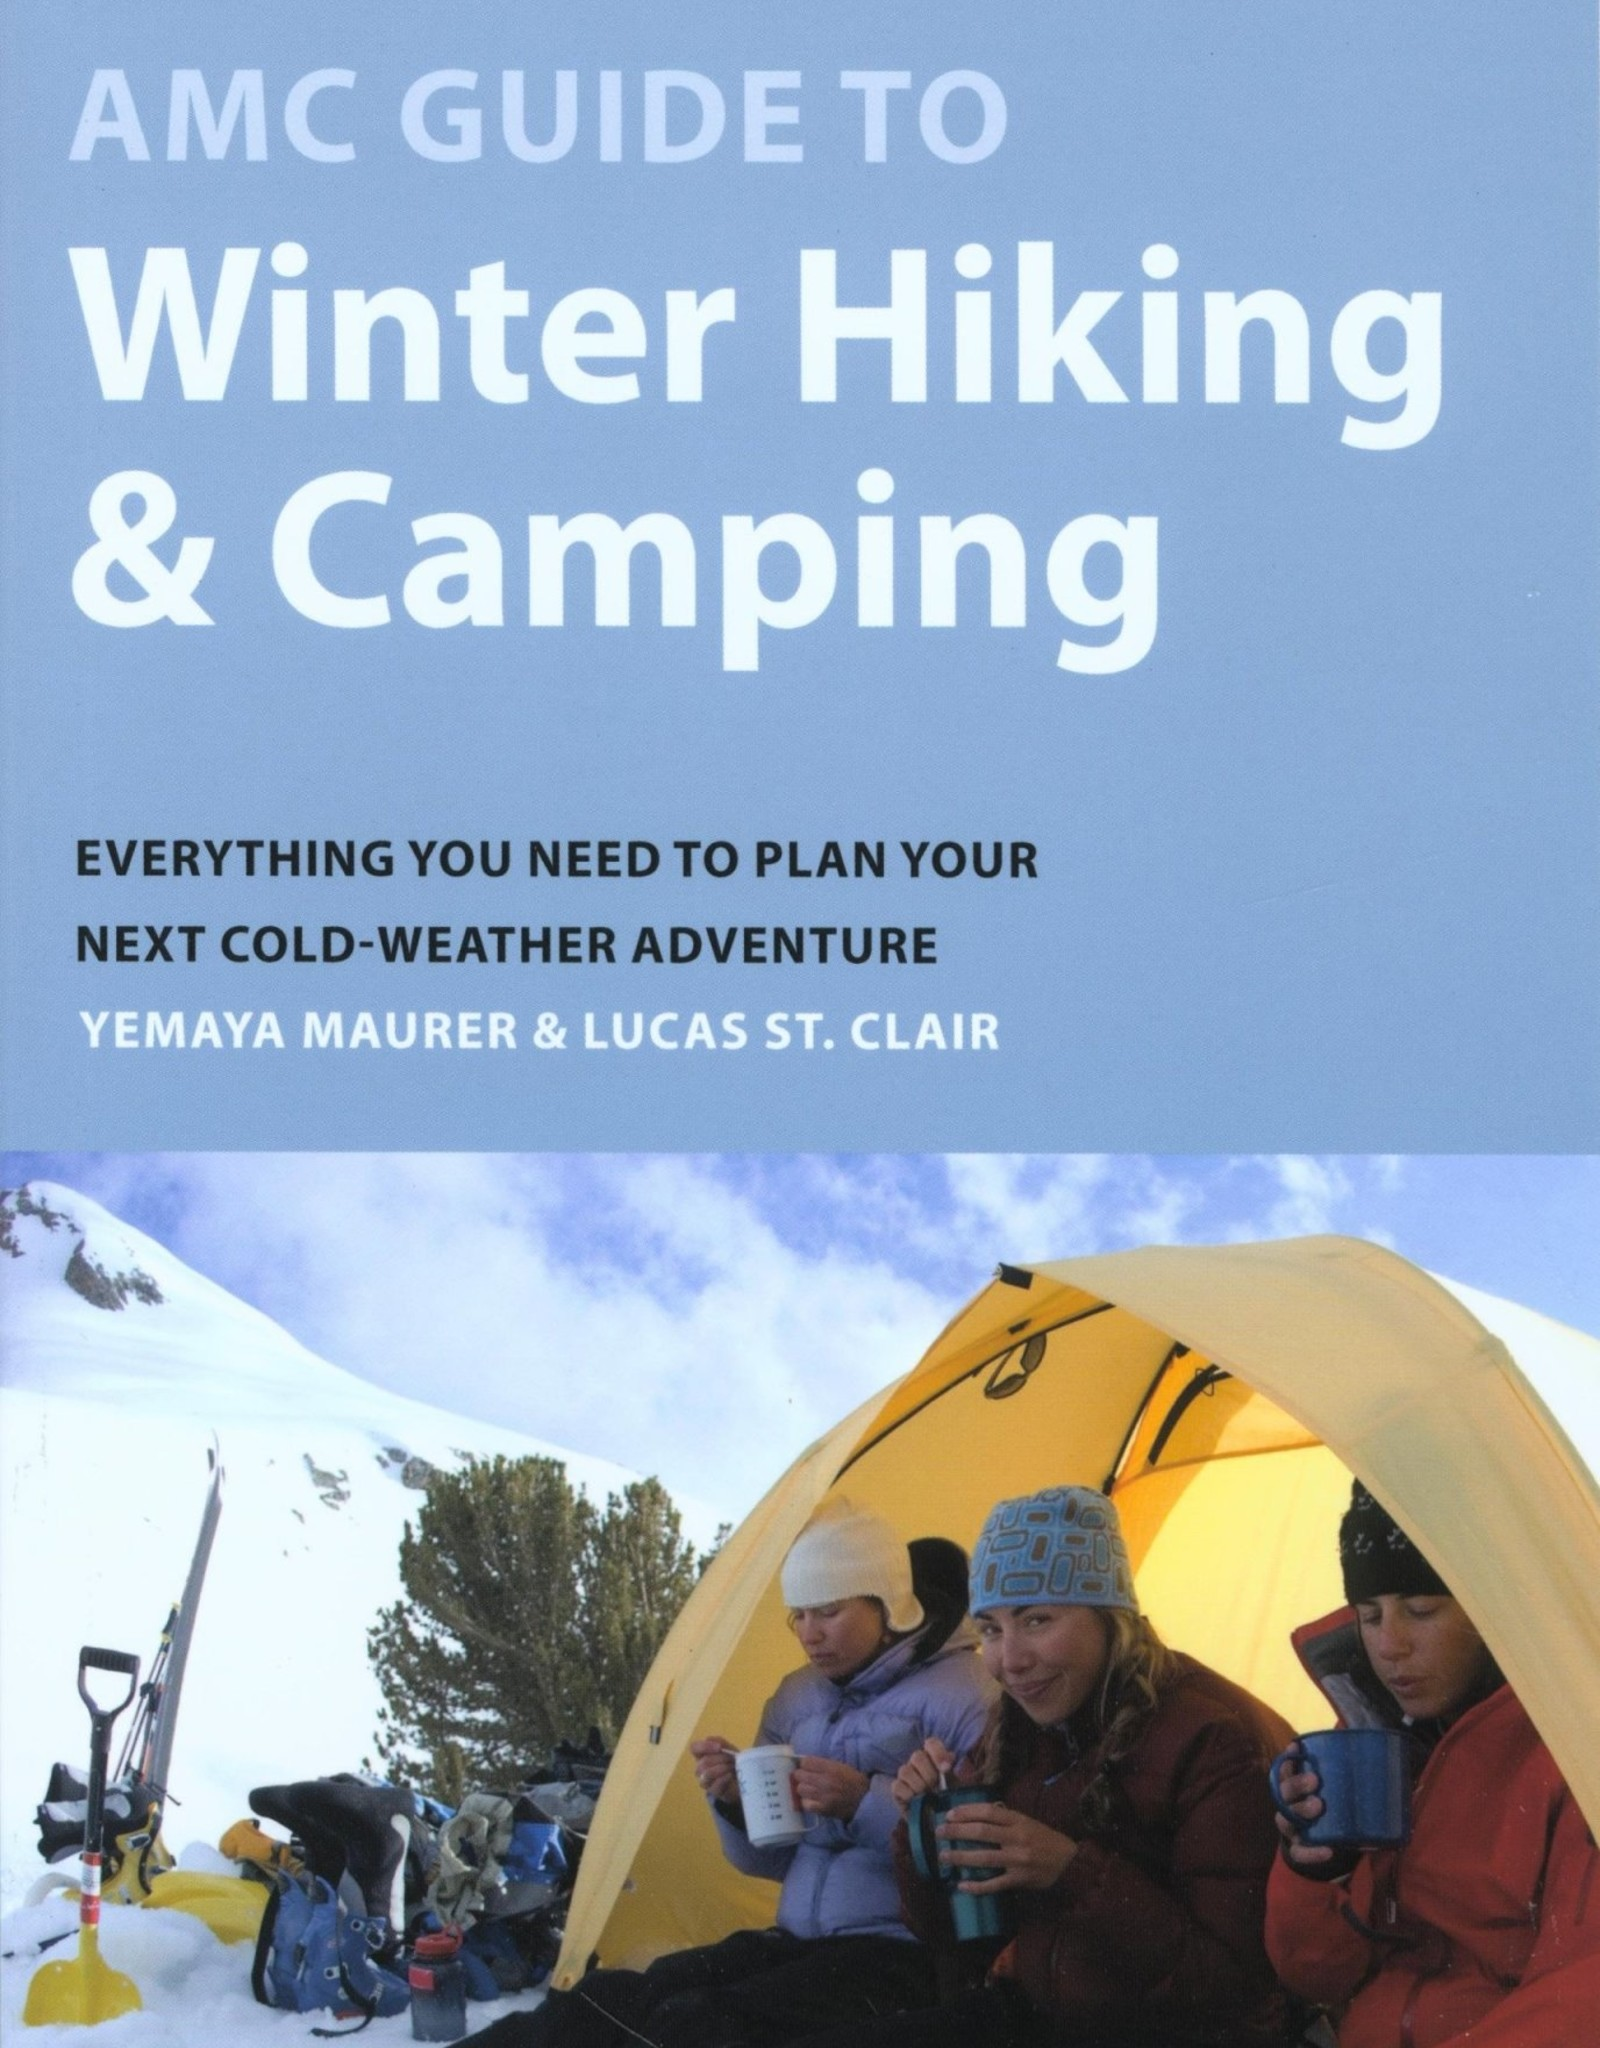 AMC'S GUIDE TO WINTER HIKING & CAMPING